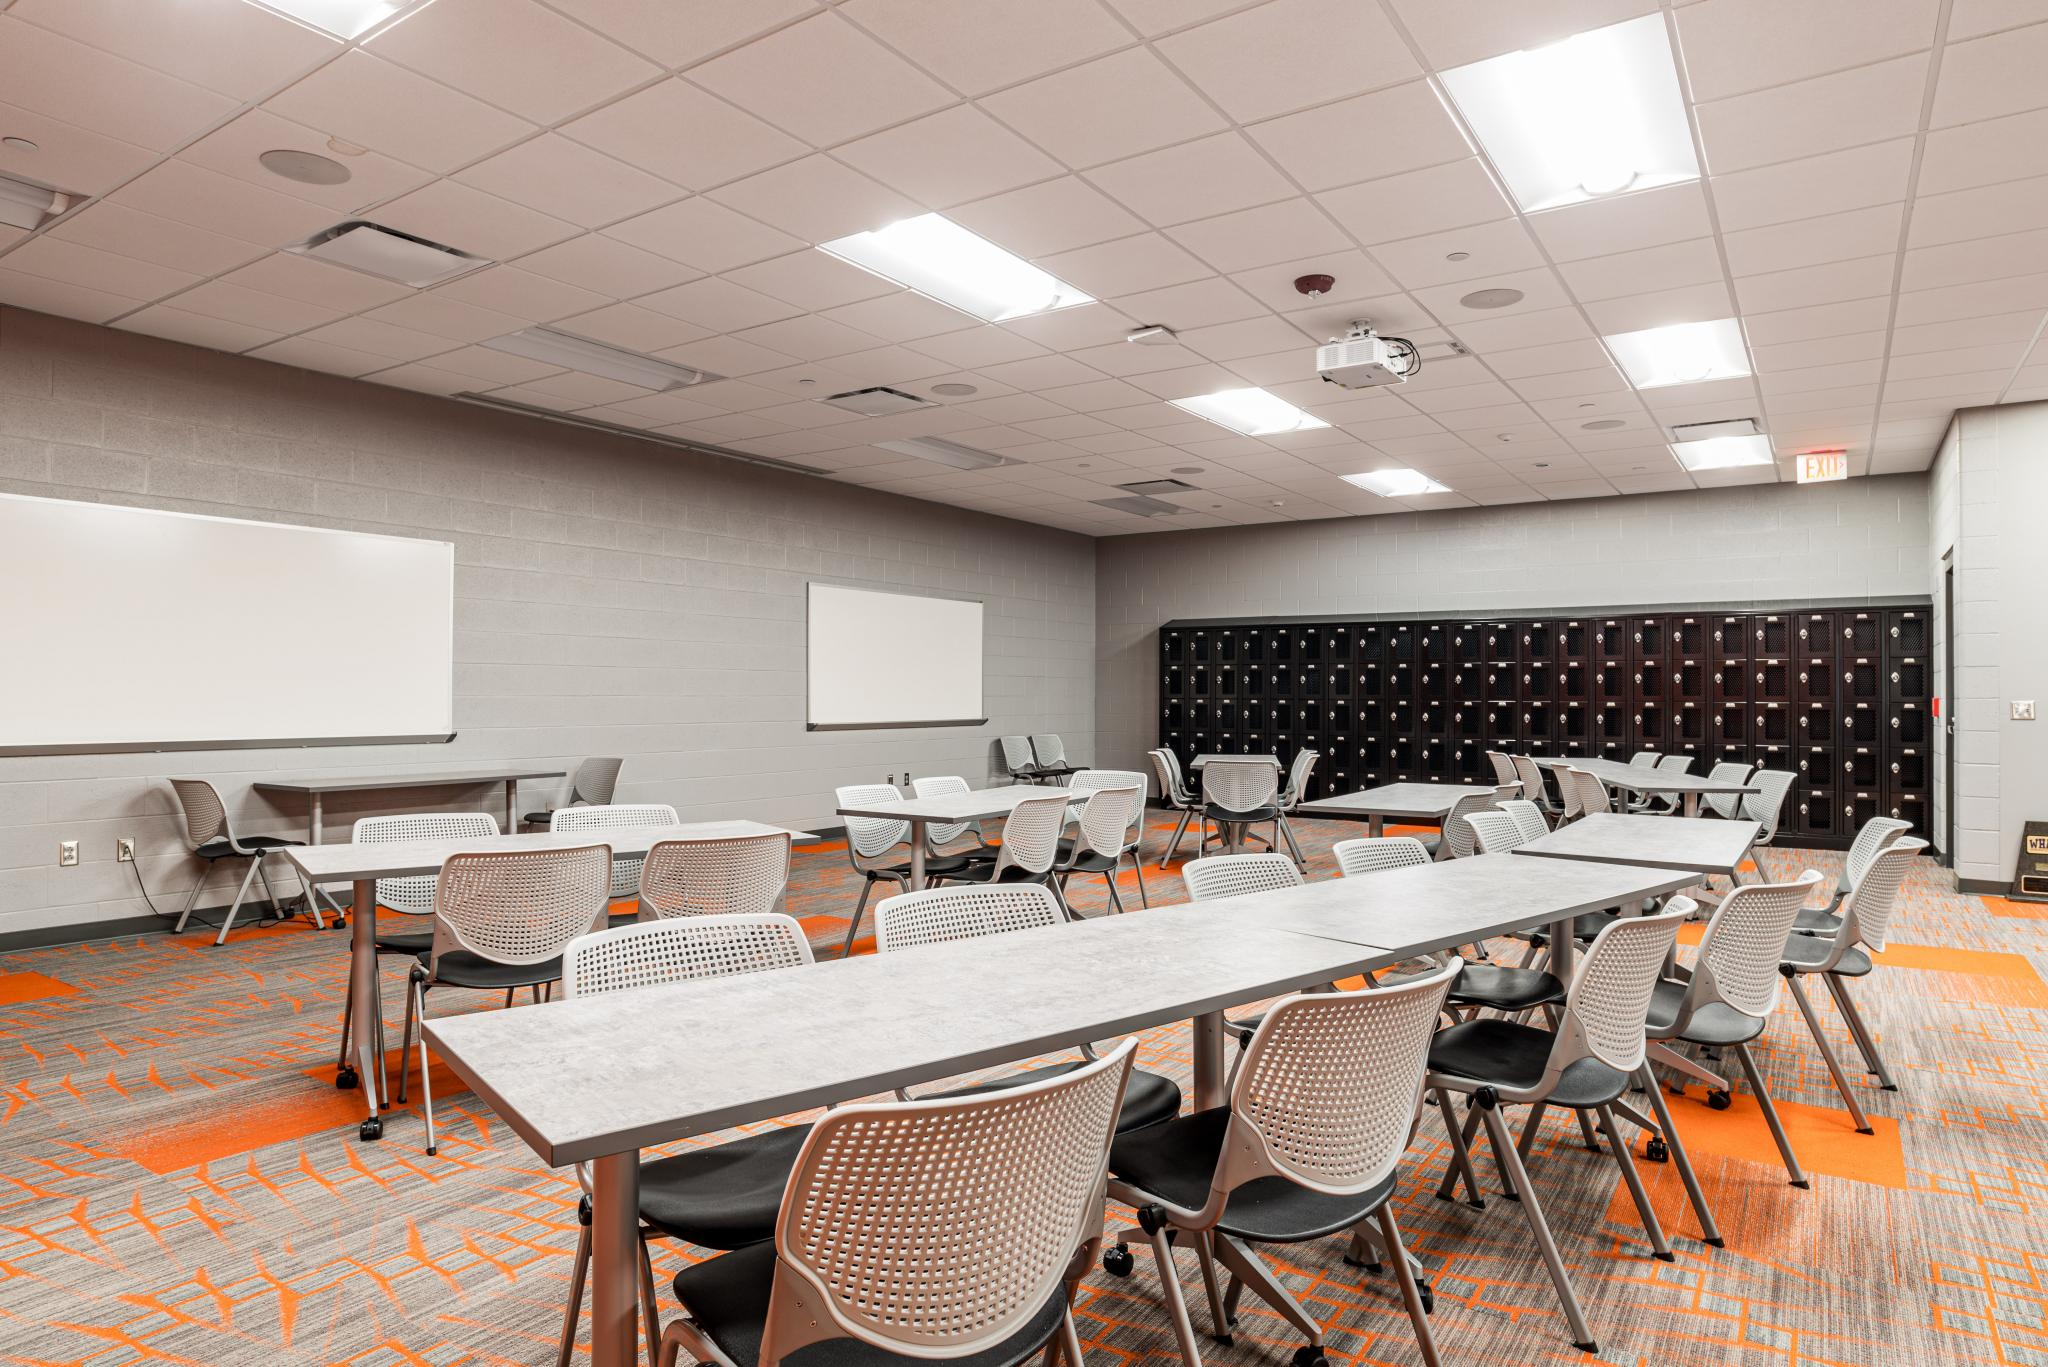 photo of a conference room with tables and chairs